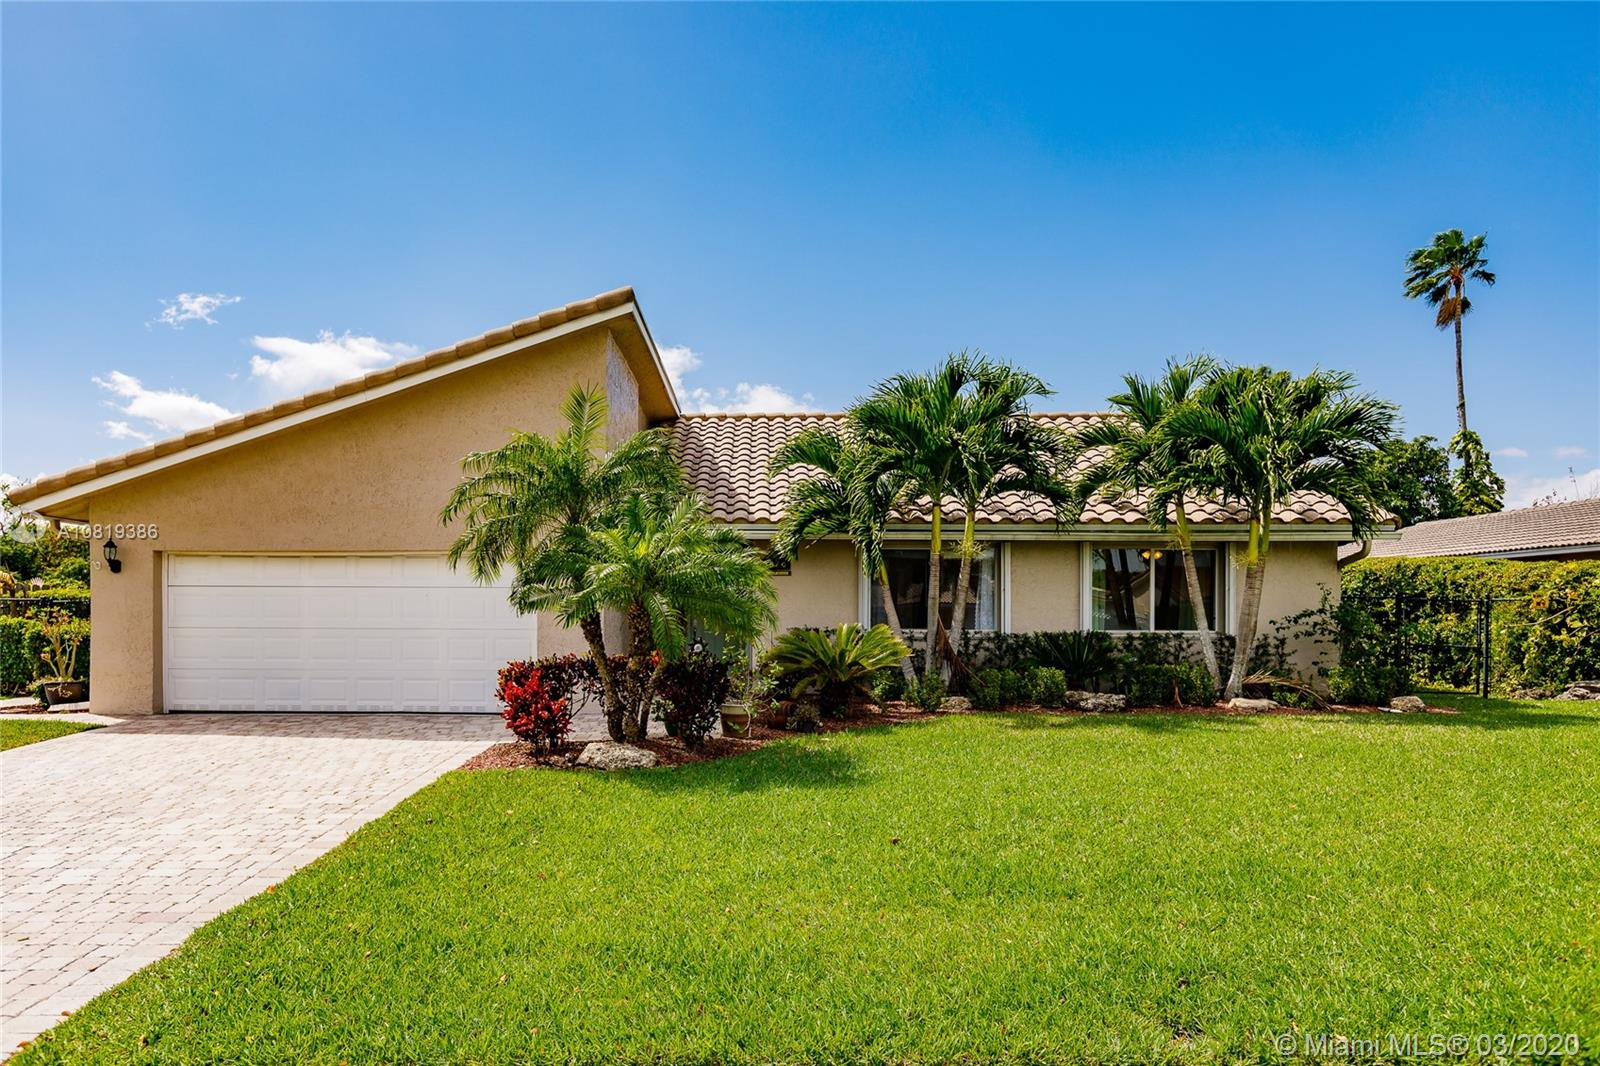 3680 NW 114th Ave, Coral Springs, FL 33065 - Coral Springs, FL real estate listing